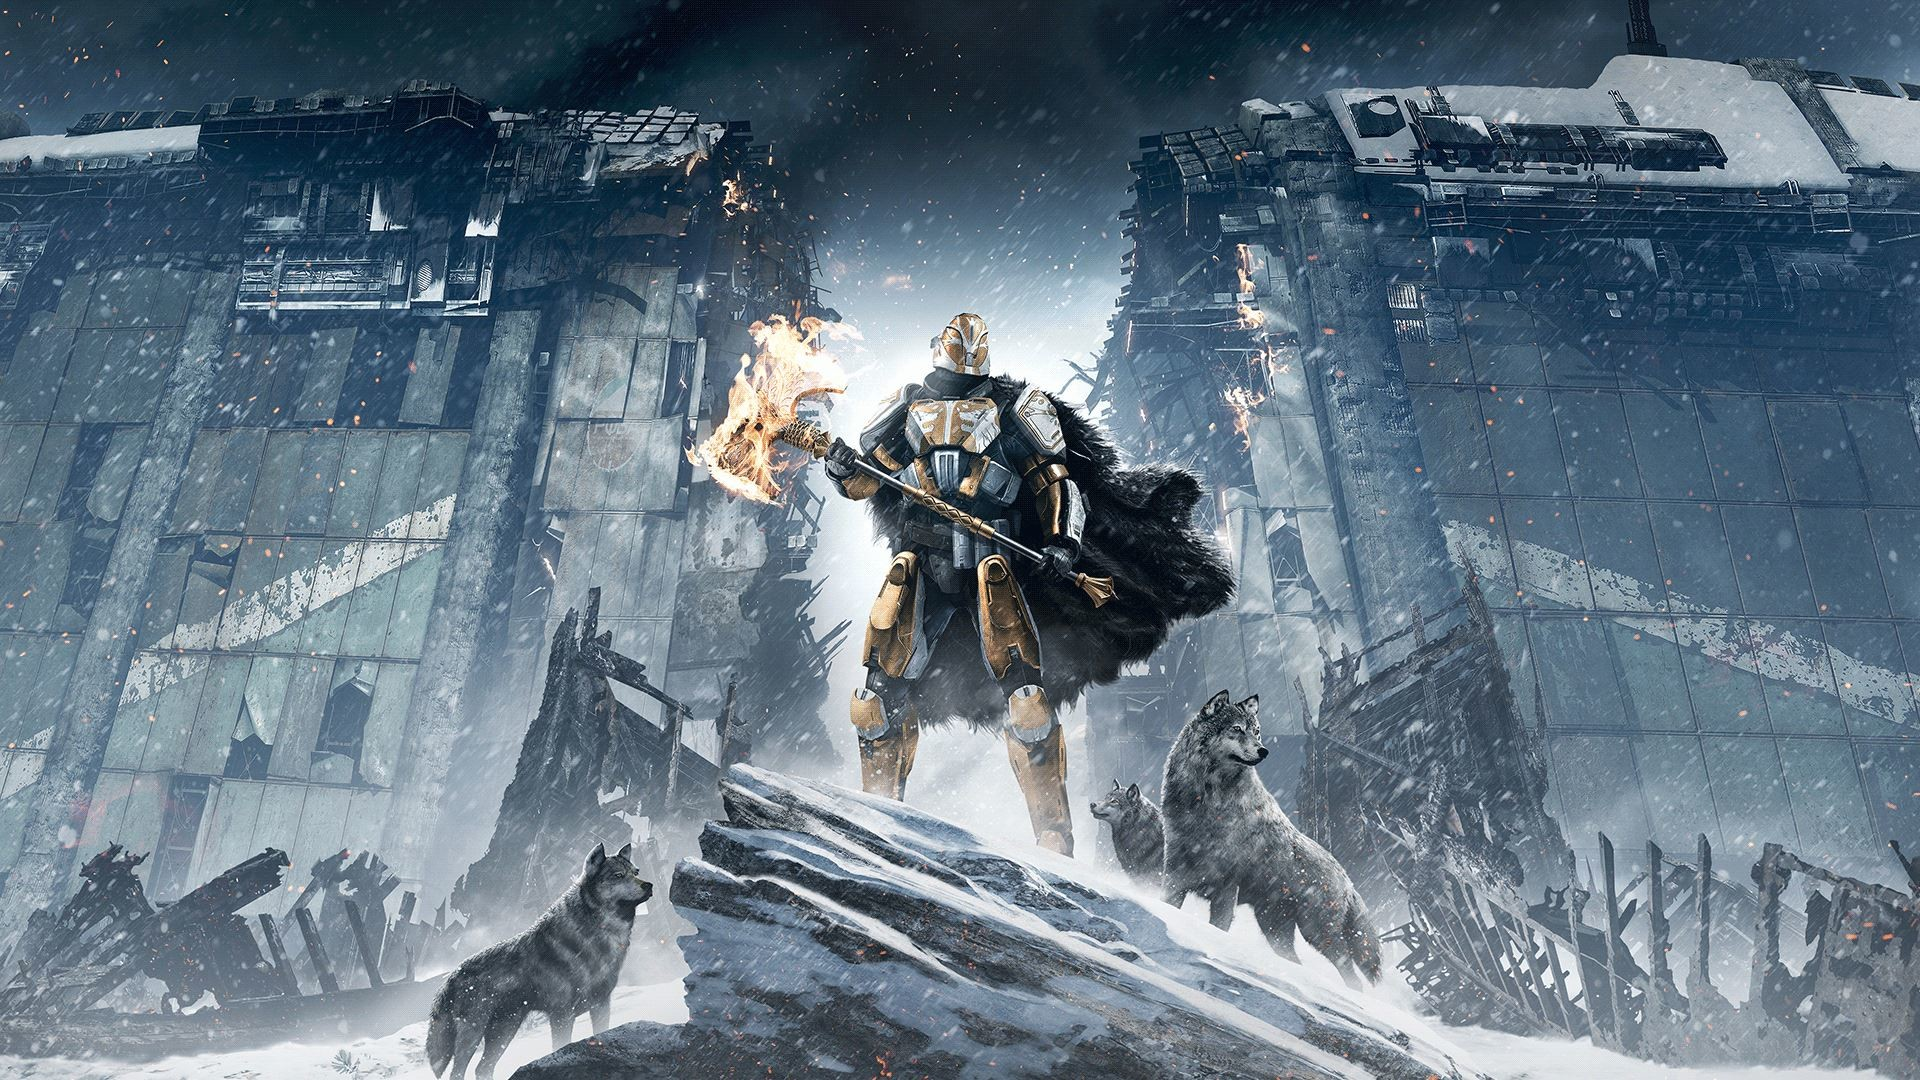 Res: 1920x1080, Image for Destiny Rise Of Iron Hd Wallpaper